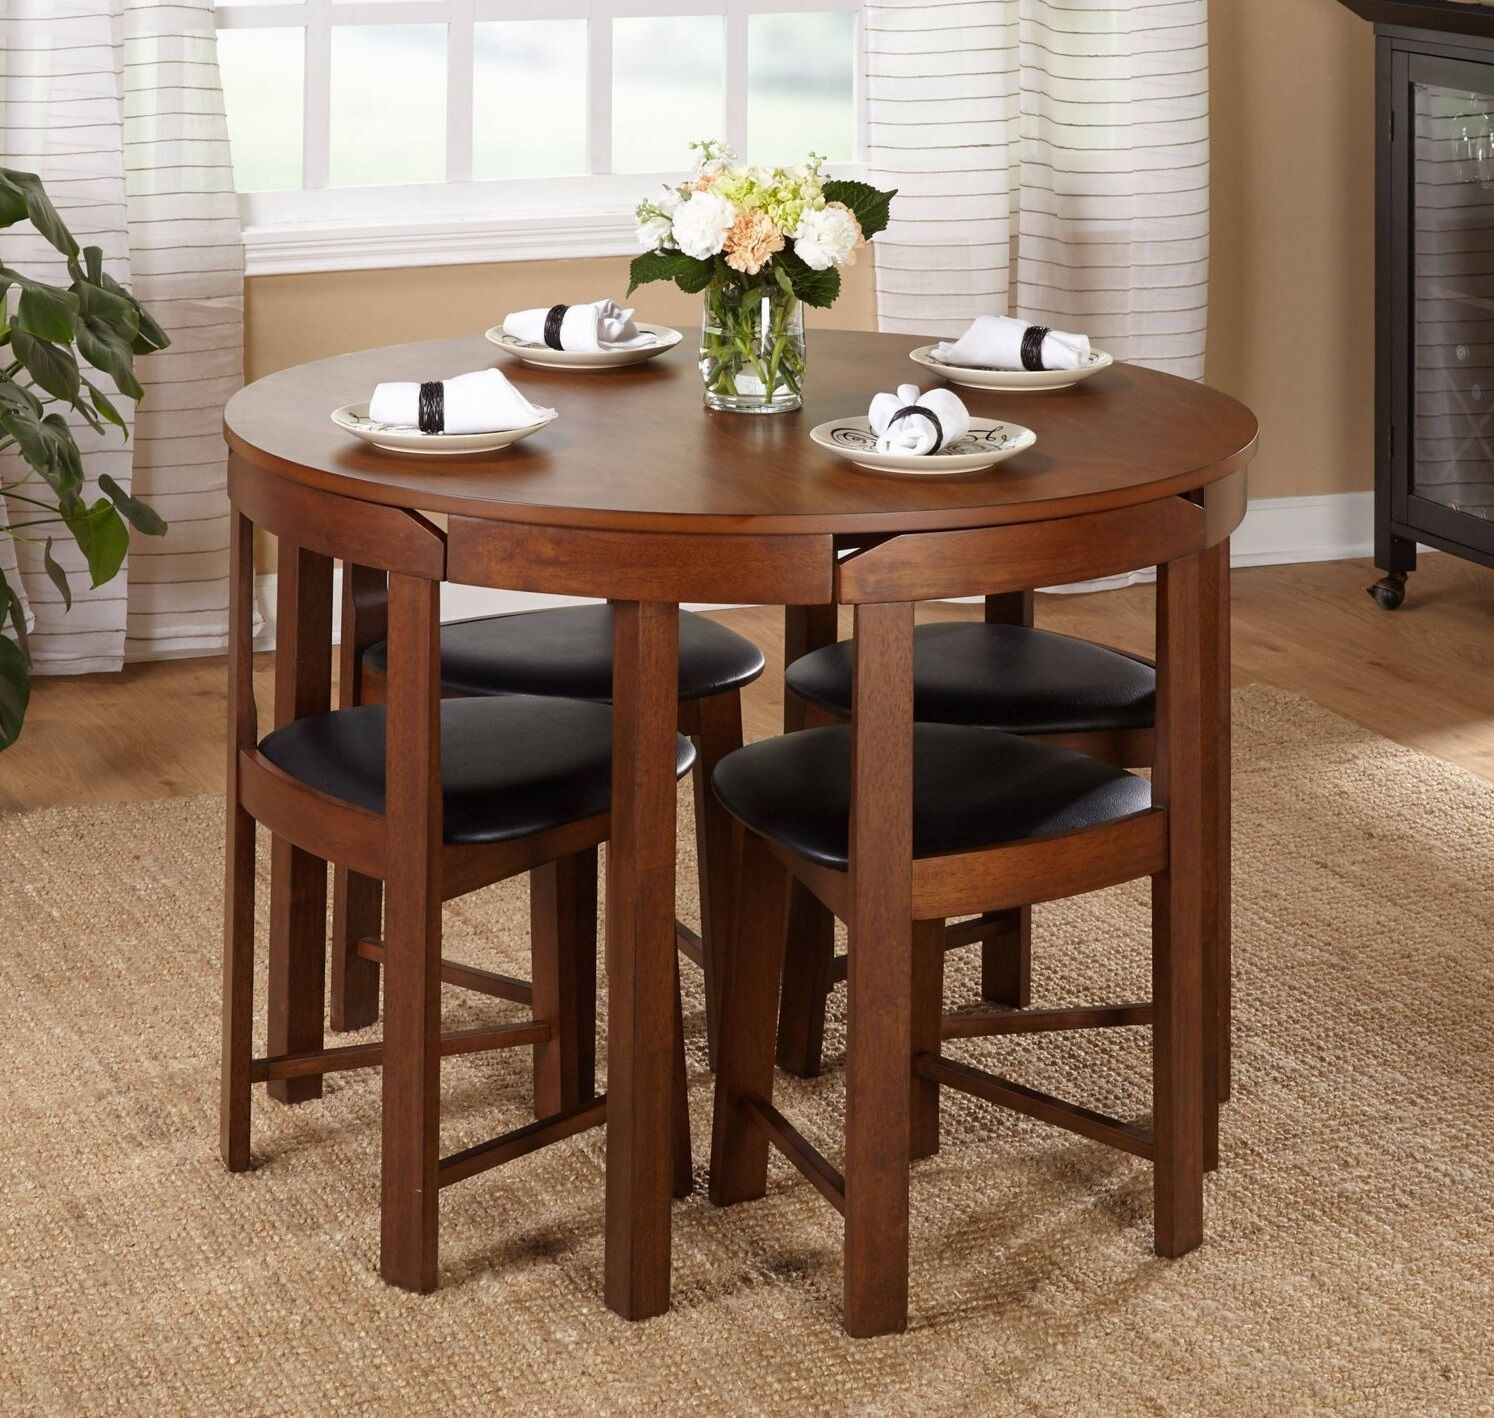 Modern 5pc dining table set kitchen dinette chairs for Kitchen dinette sets